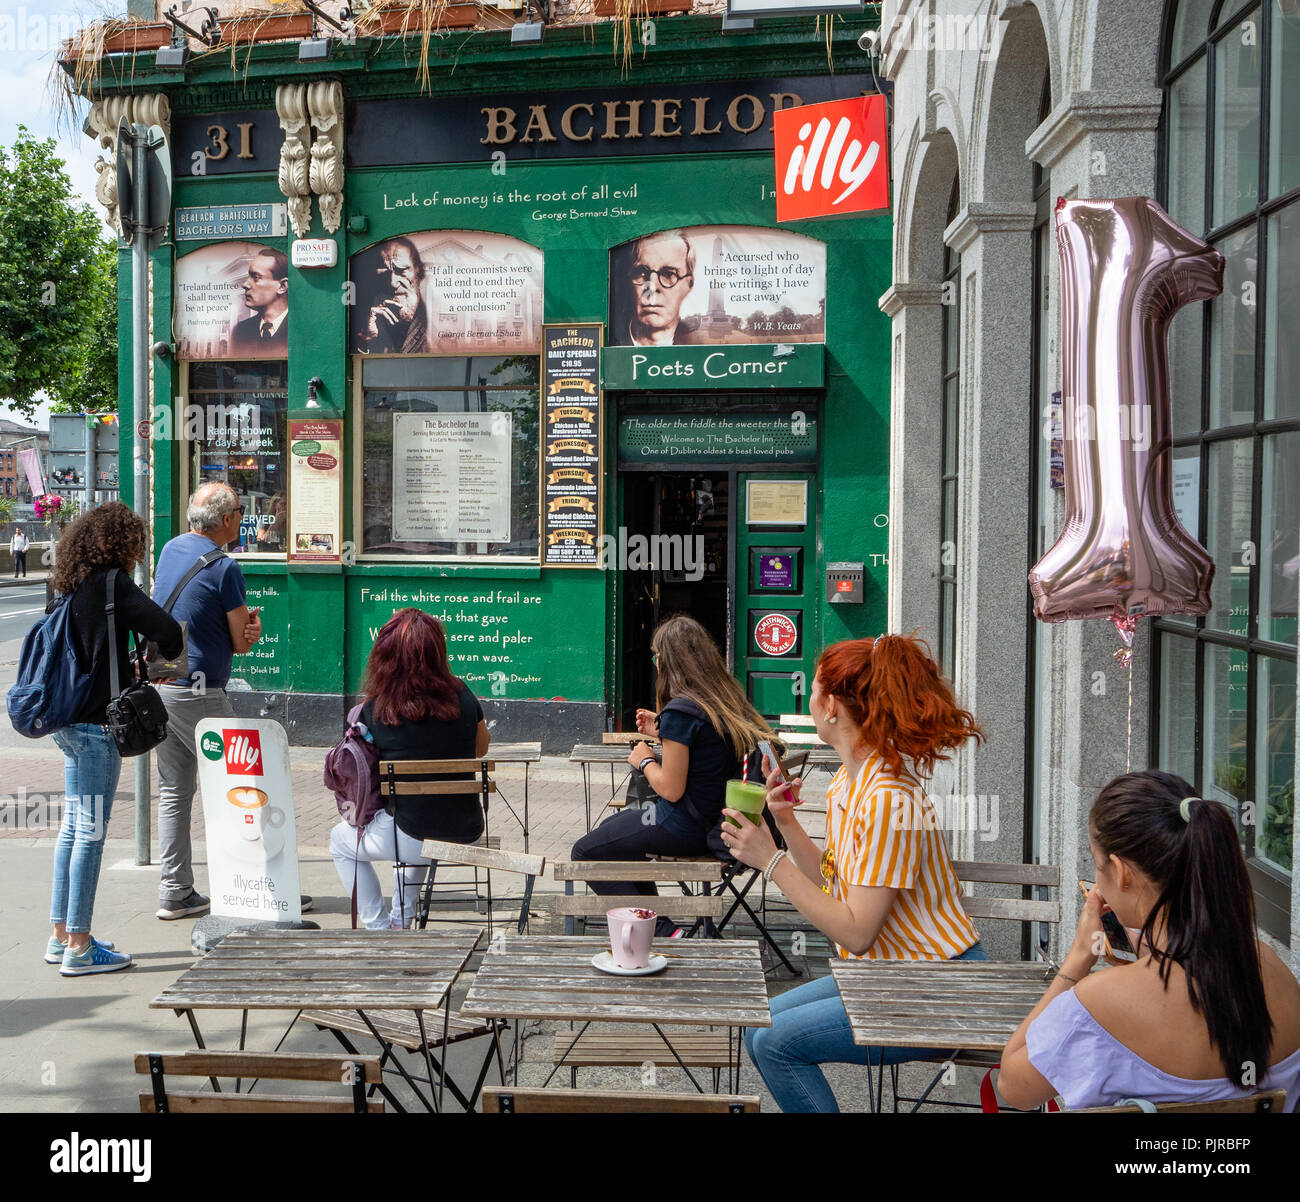 Readers of the literary content by writers and poets on the face of the Bachelor Inn on Bachelors Walk Quay by the River Liffey in Dublin Ireland - Stock Image